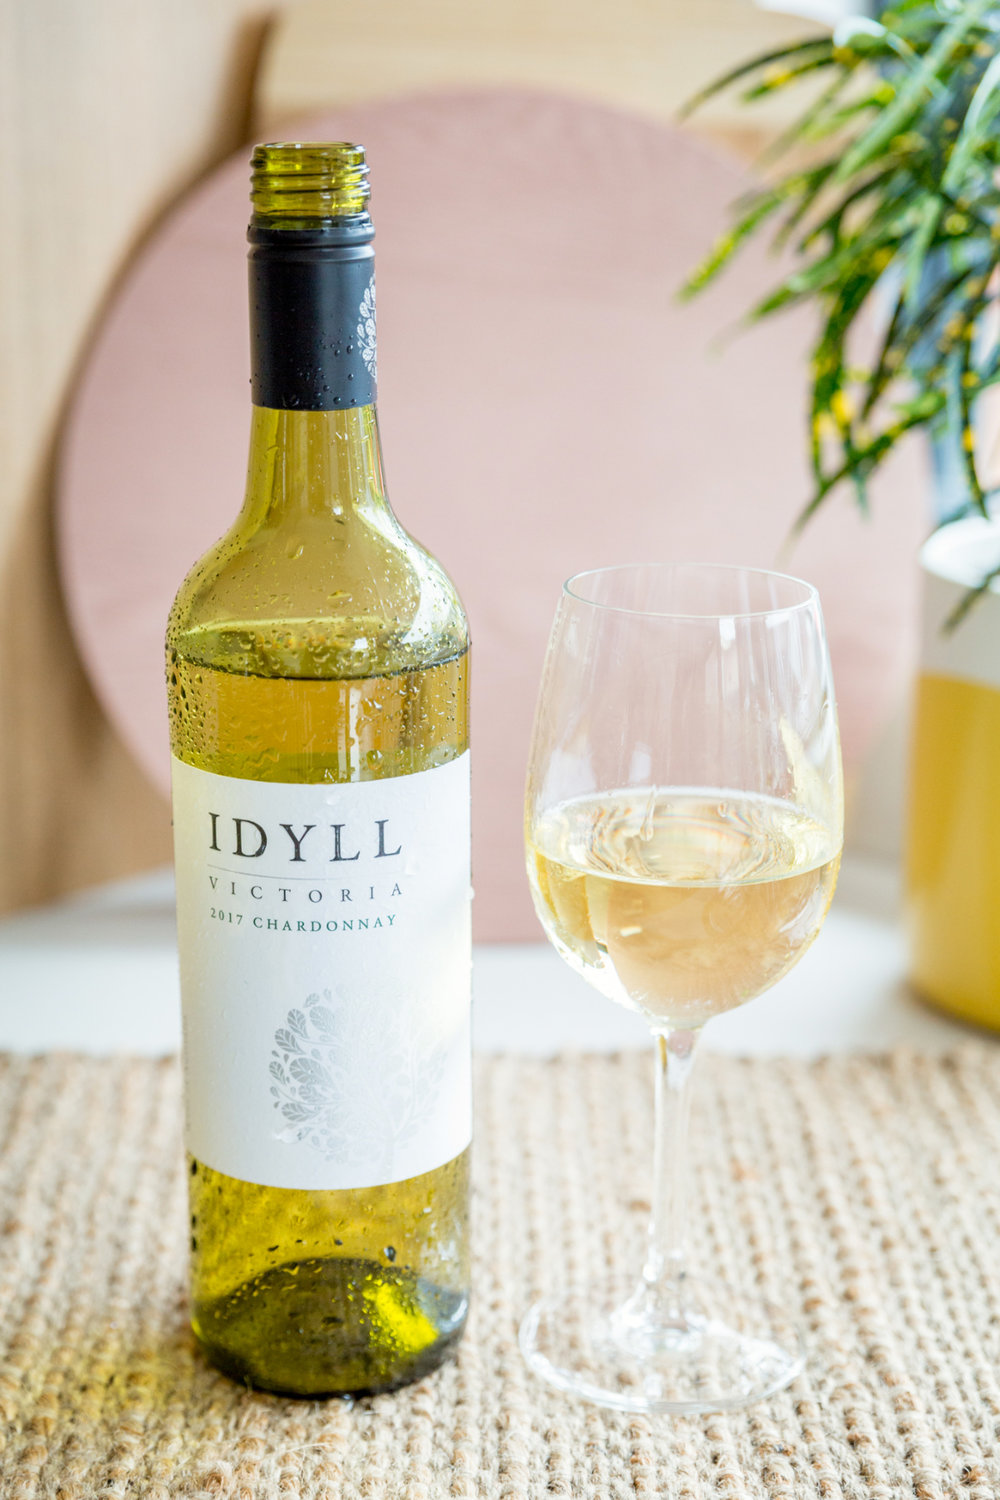 Idyll Wine Co Chardonnay